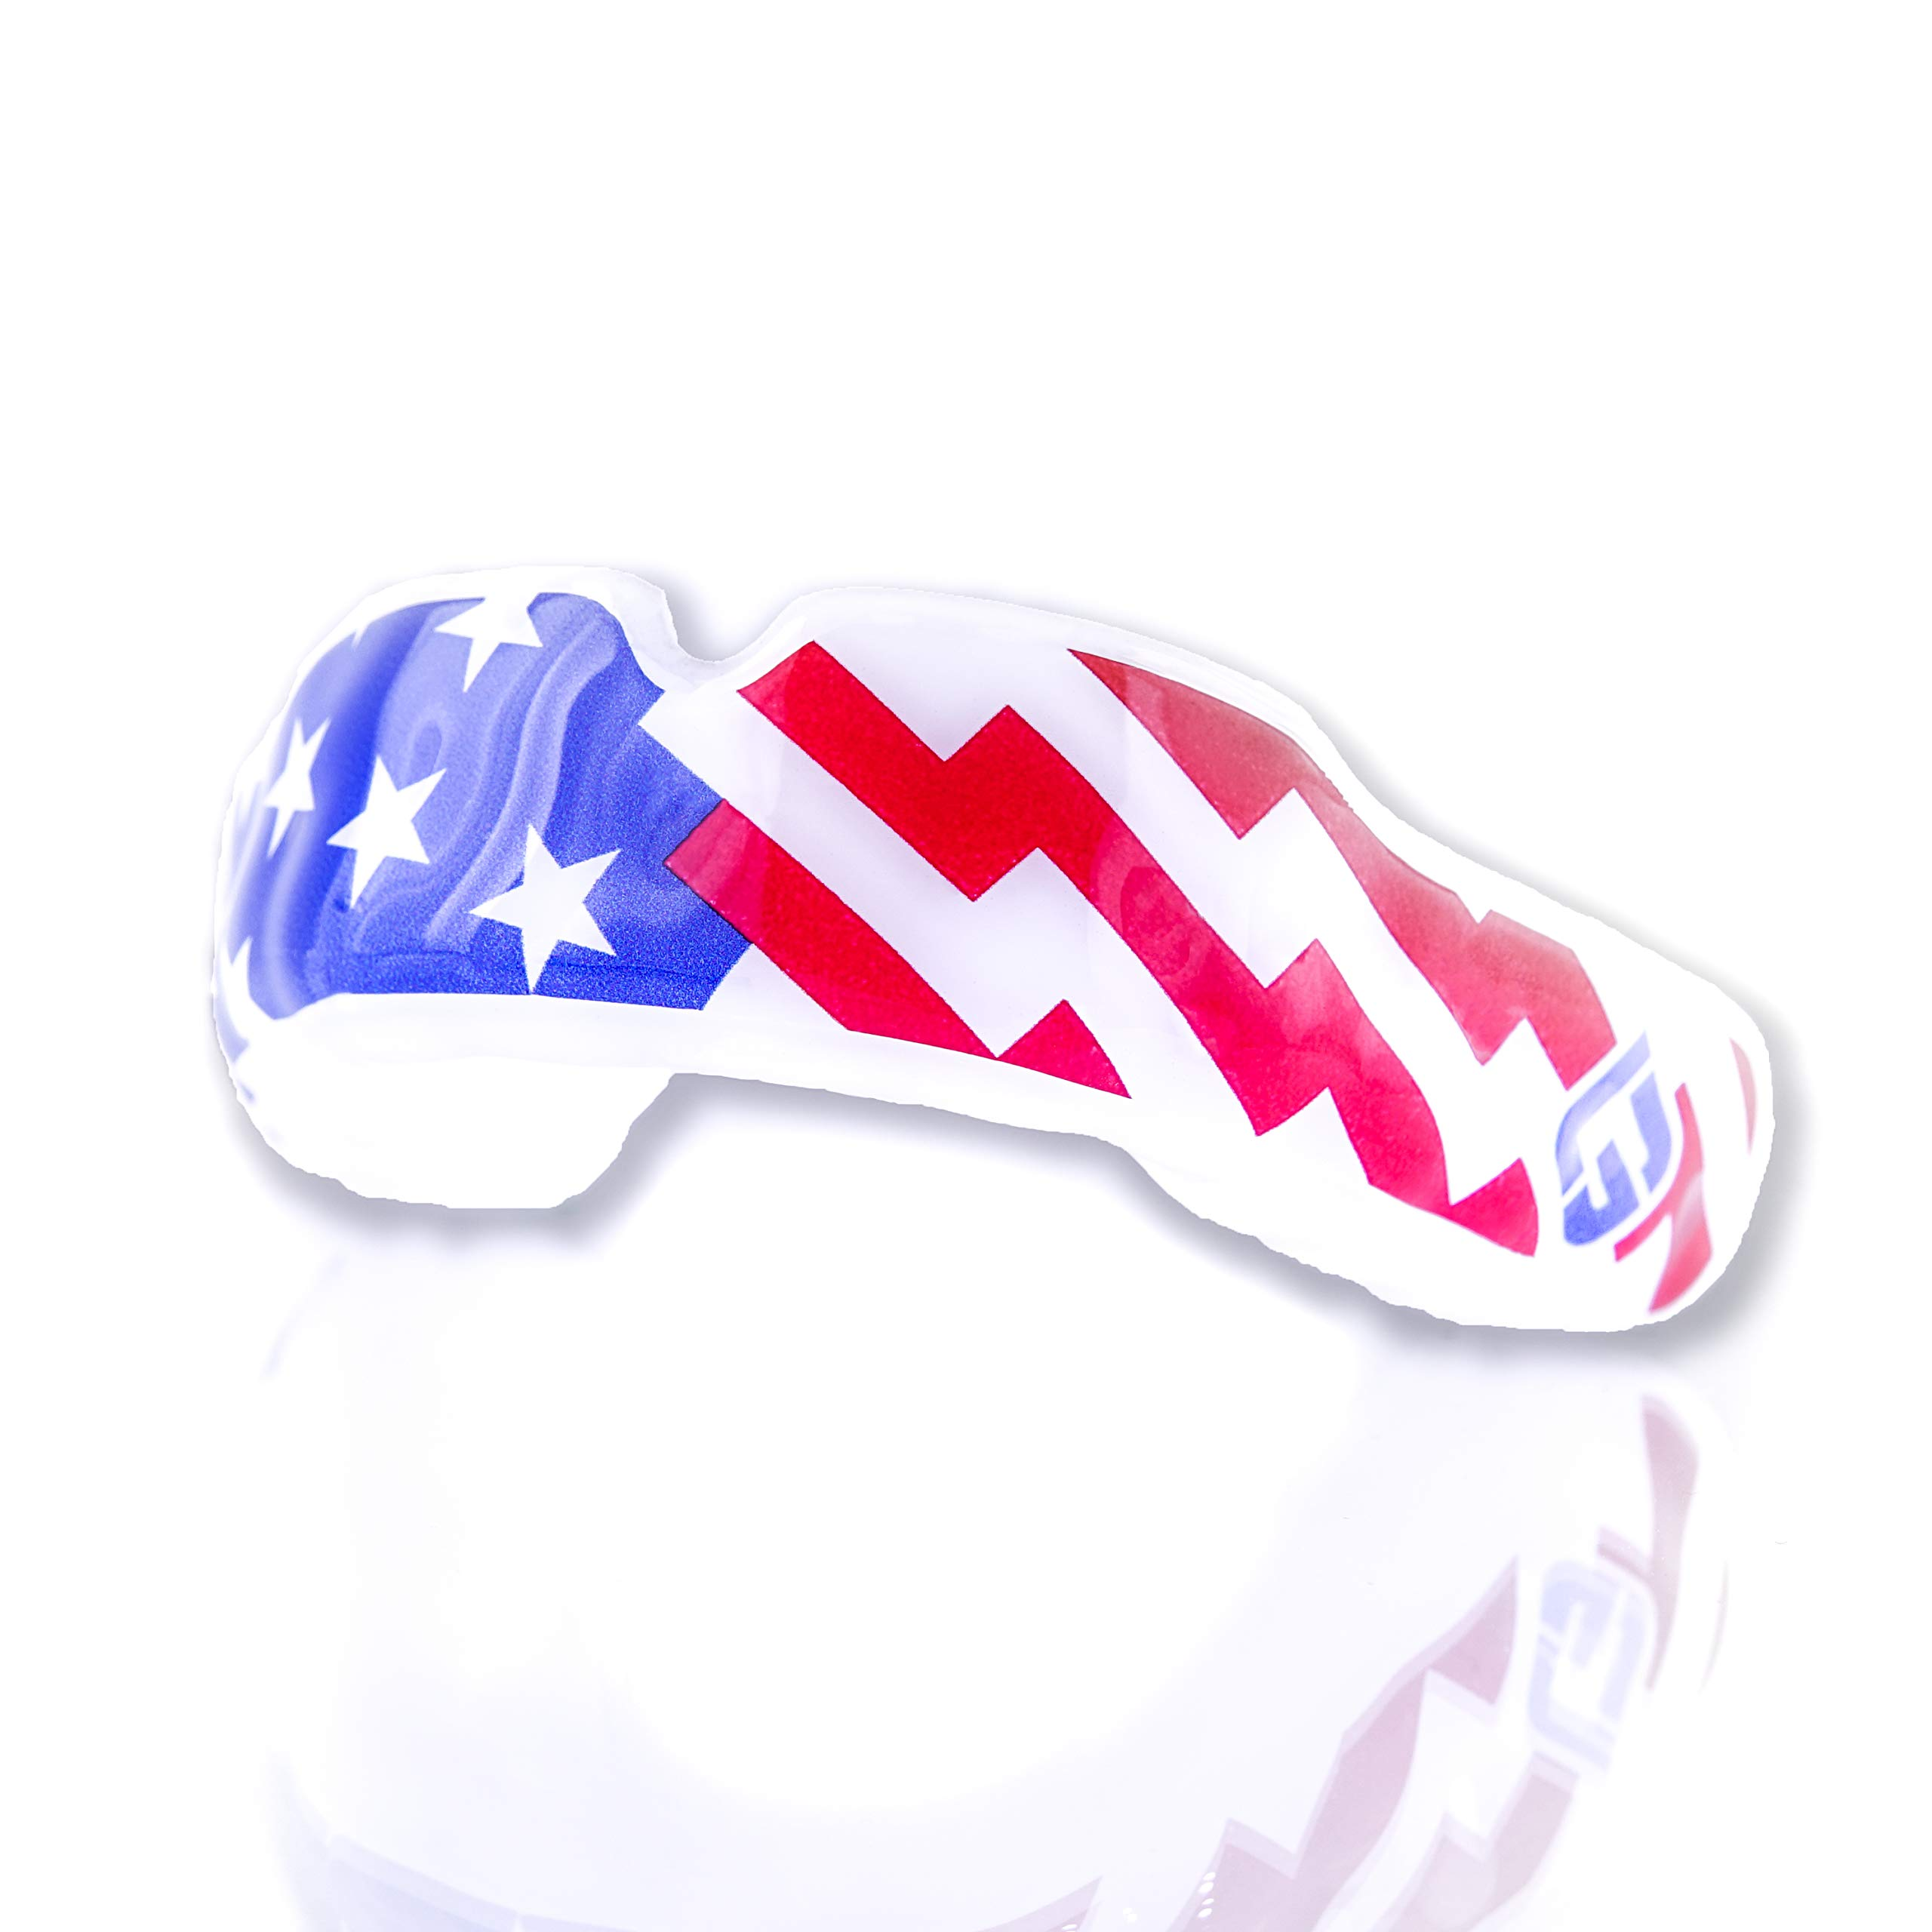 GuardLab APEX Semi-Custom Mouthguard by 3D Protection | Athletic Safety | High-Tech & Customizable